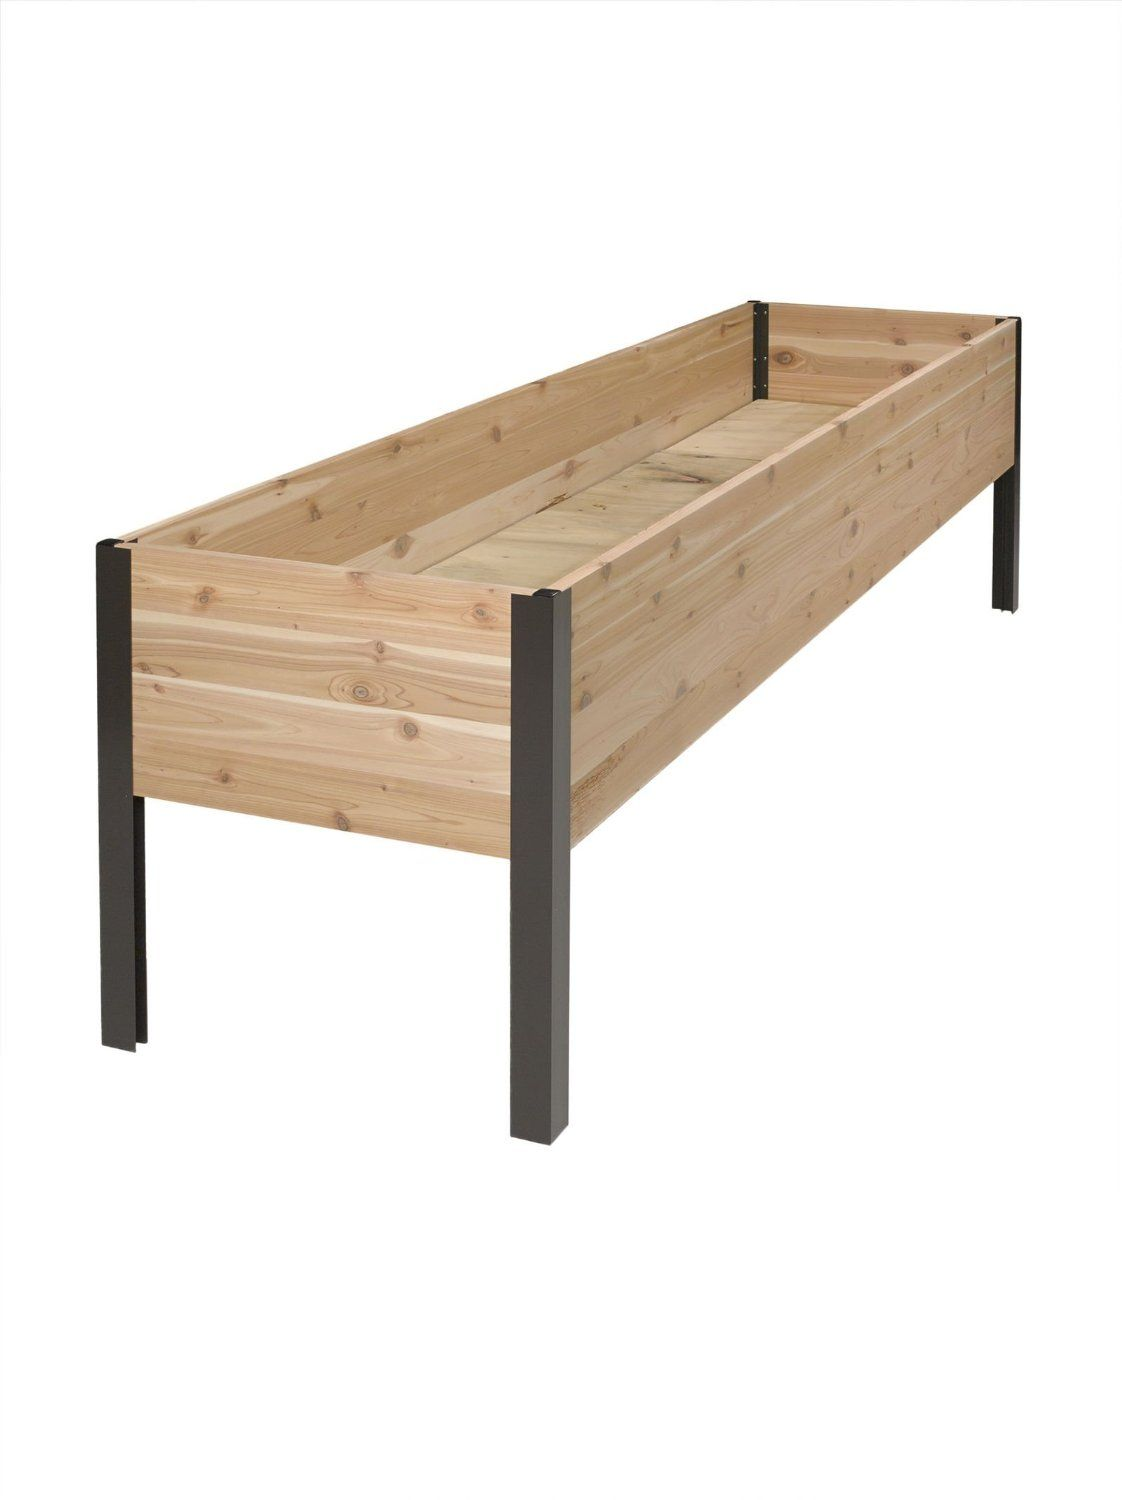 2 X 8 Elevated Cedar Planter Box Muebles Pinterest Huerta  # Muebles La Huerta